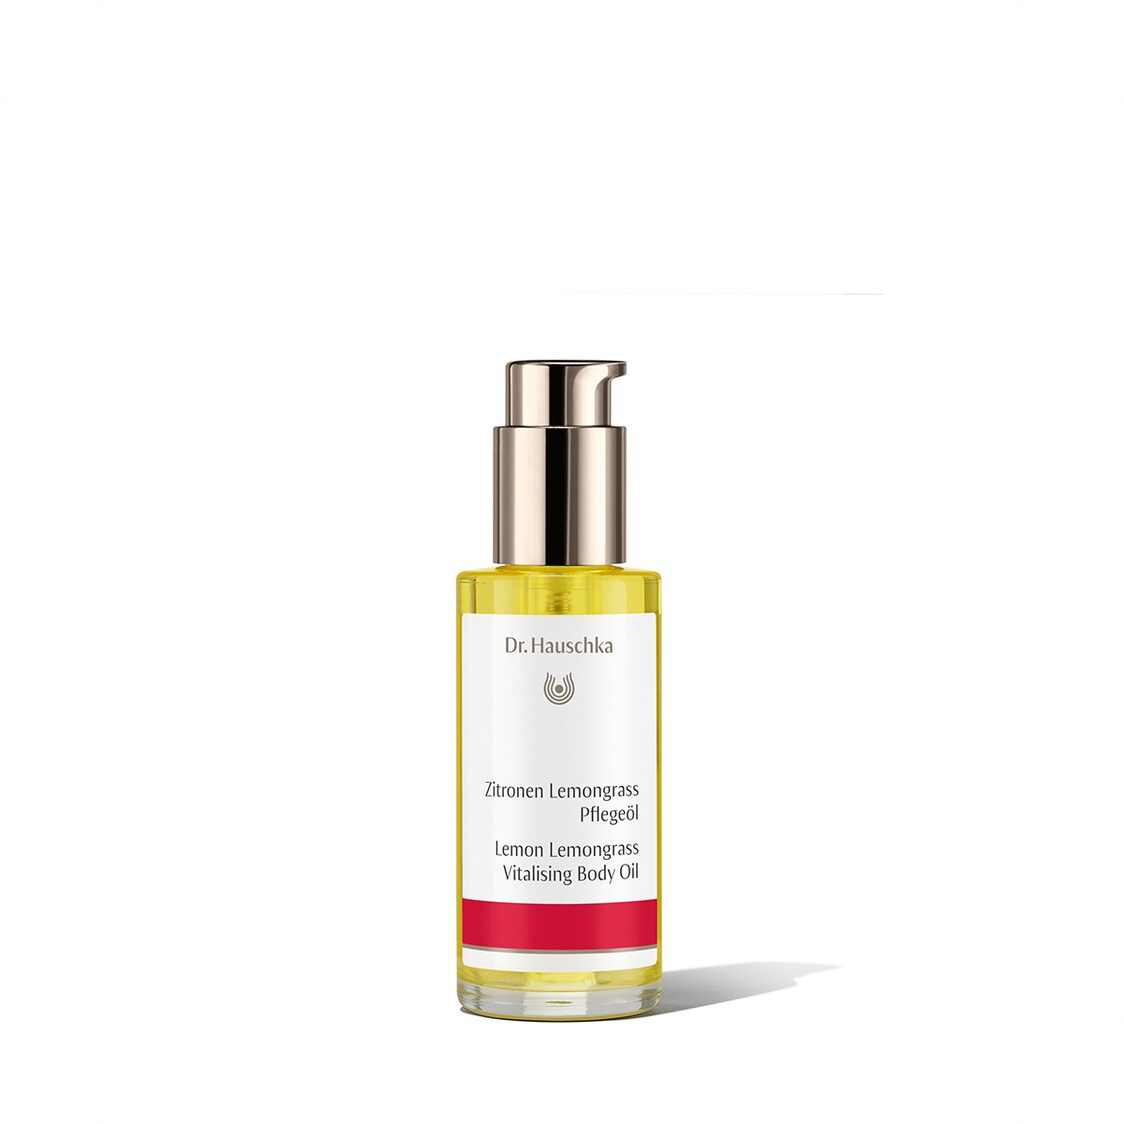 Lemon Lemongrass Vitalising Body Oil 75ml